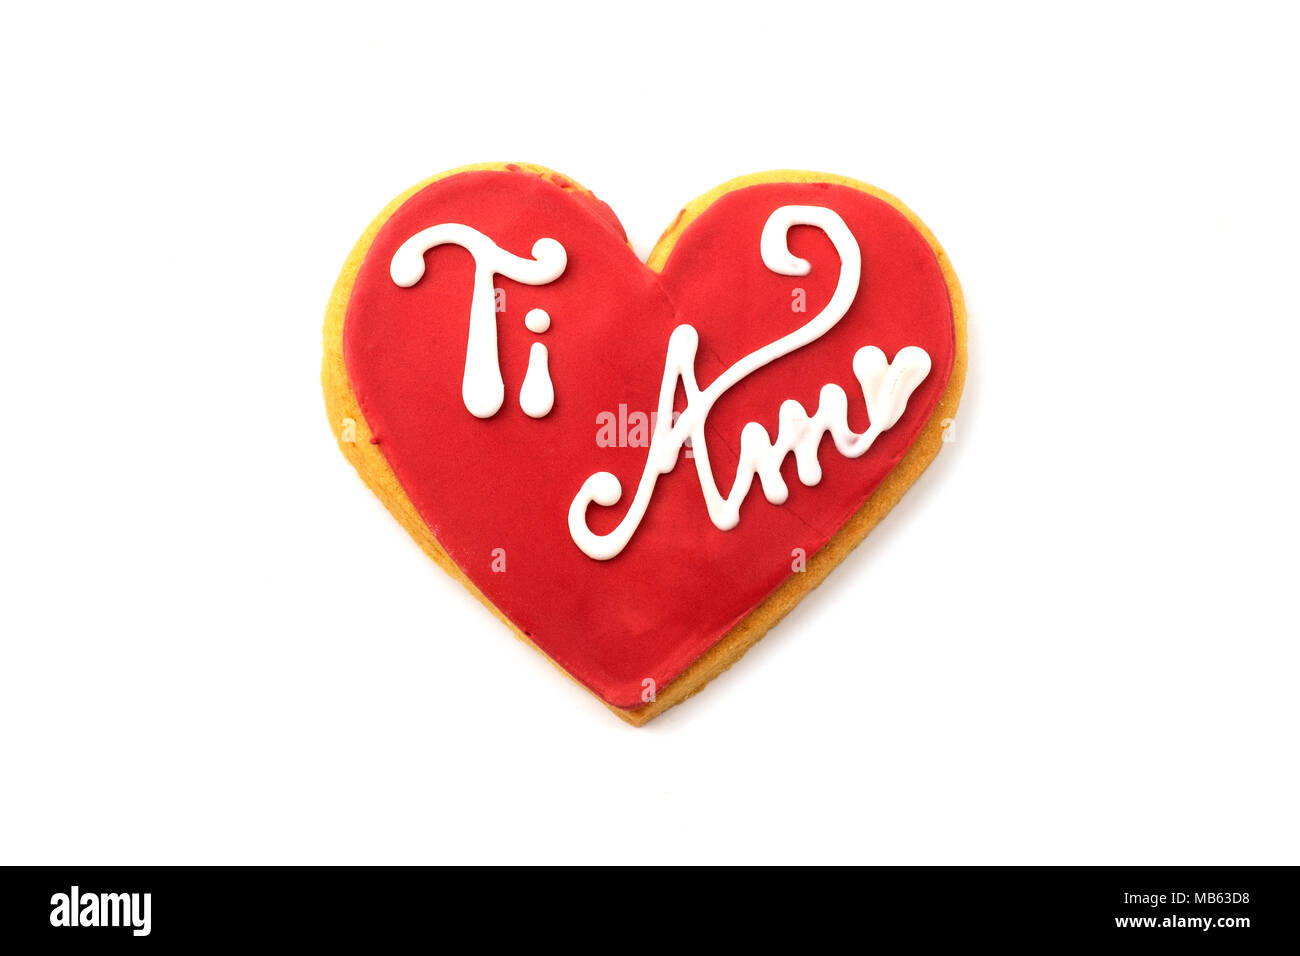 'Ti amo' (i love you) cookie on a white background - Stock Image